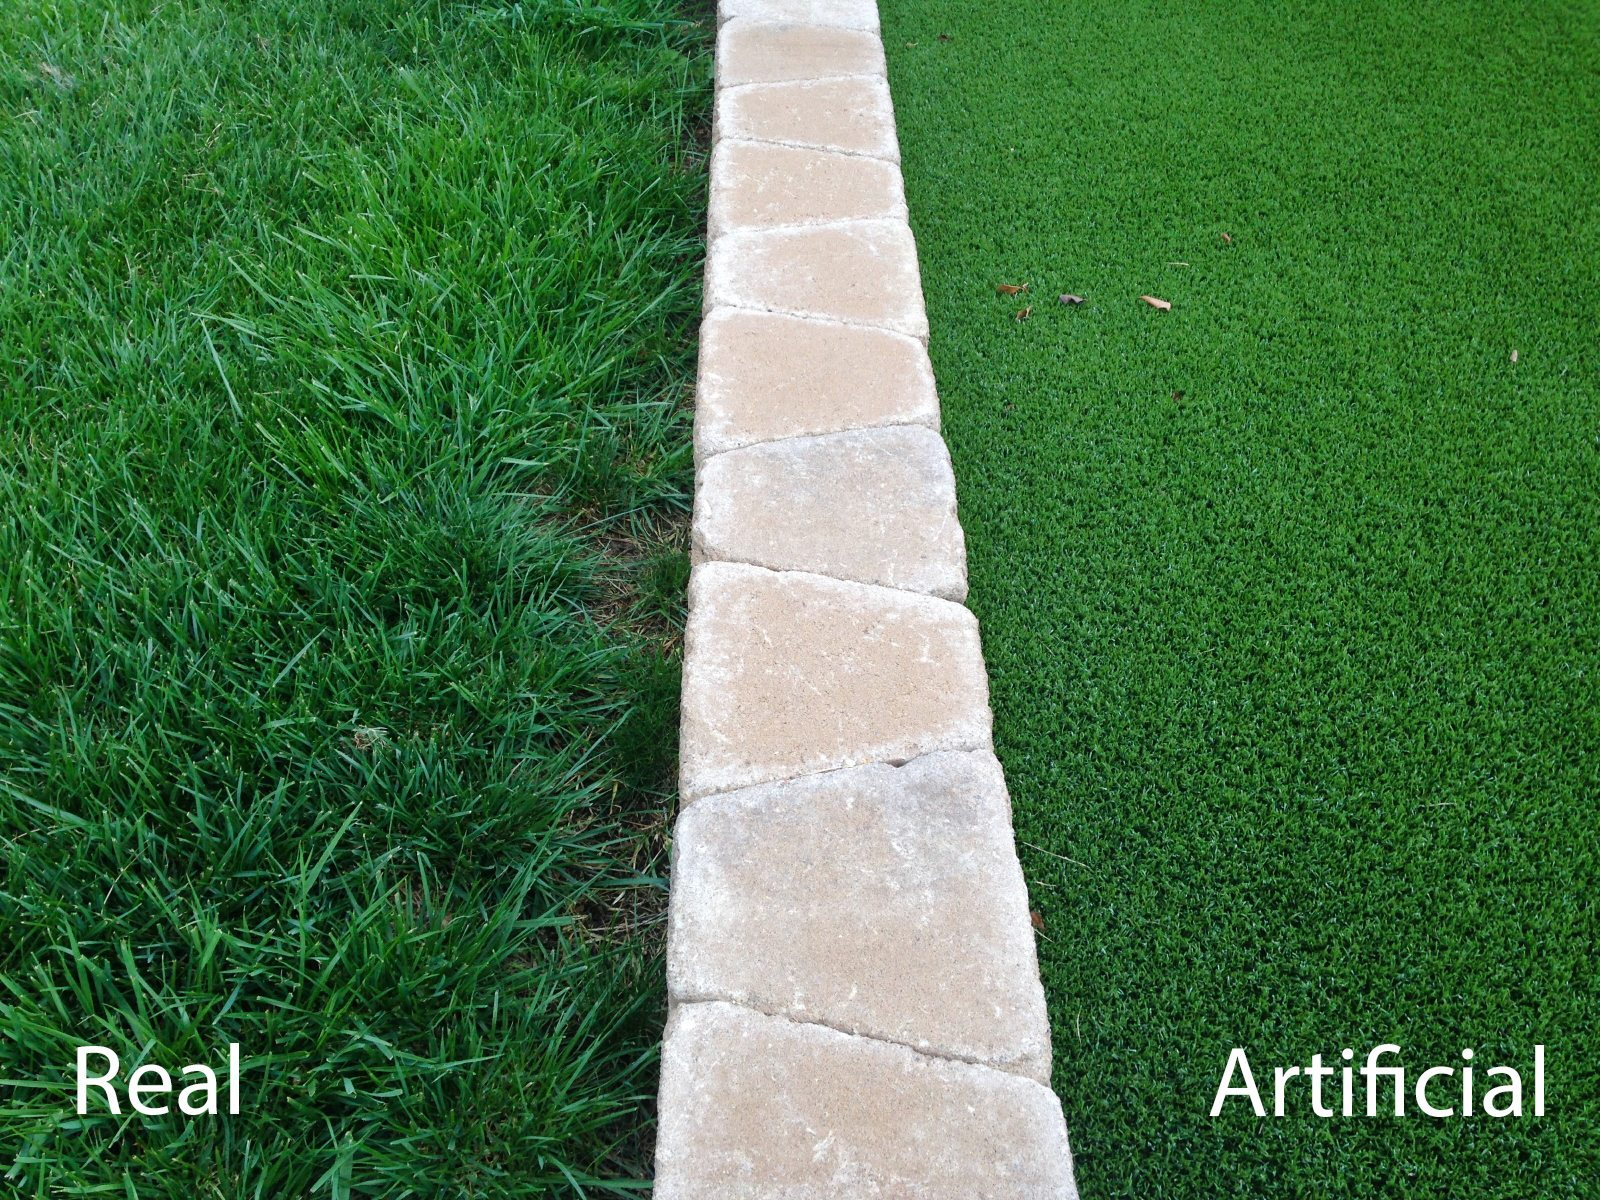 Is An Artificial Lawn ? Learn About Using Artificial Grass For Yards